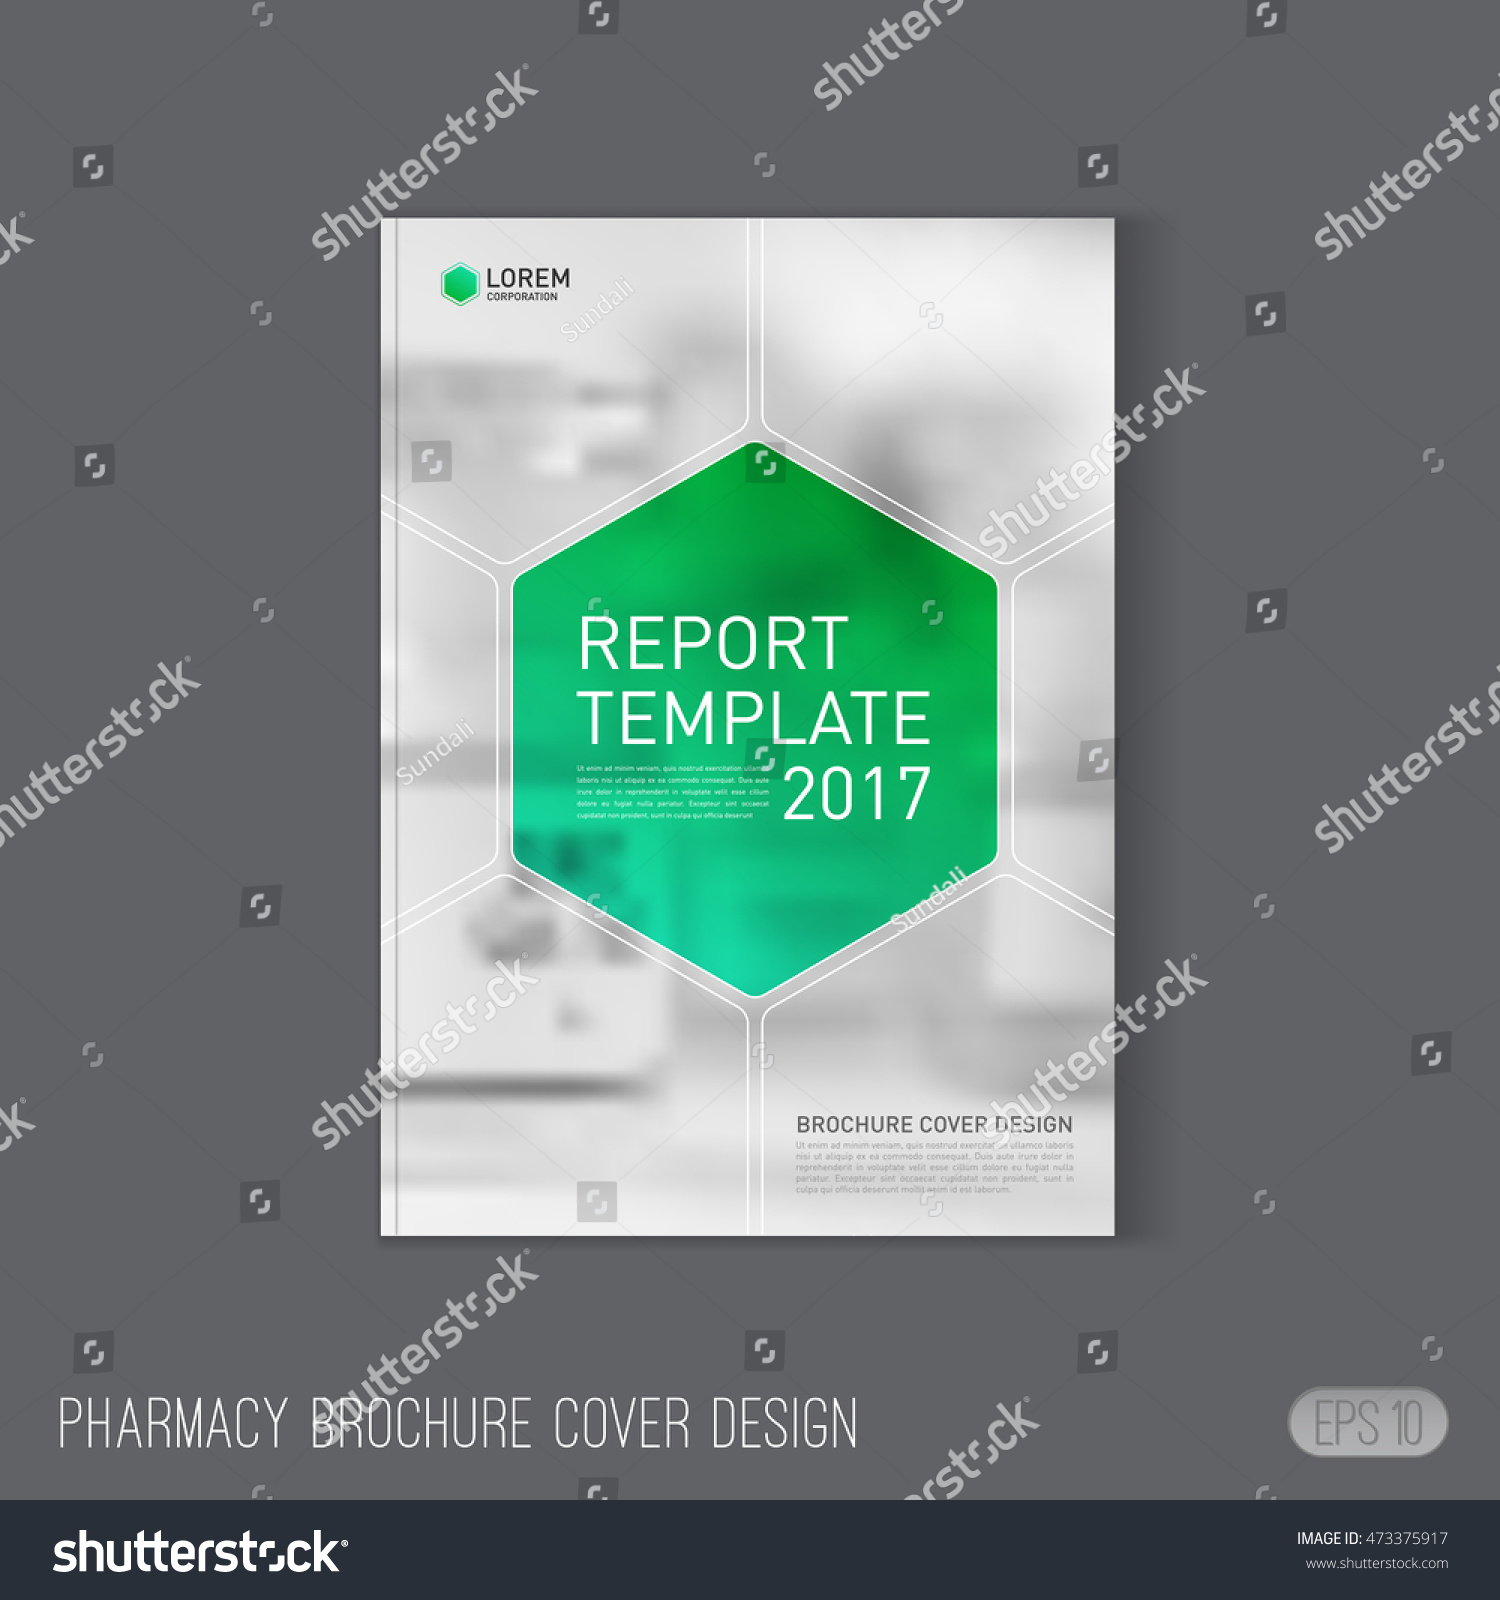 Pharmaceutical Brochure Cover Template Layout Medical Stock Vector